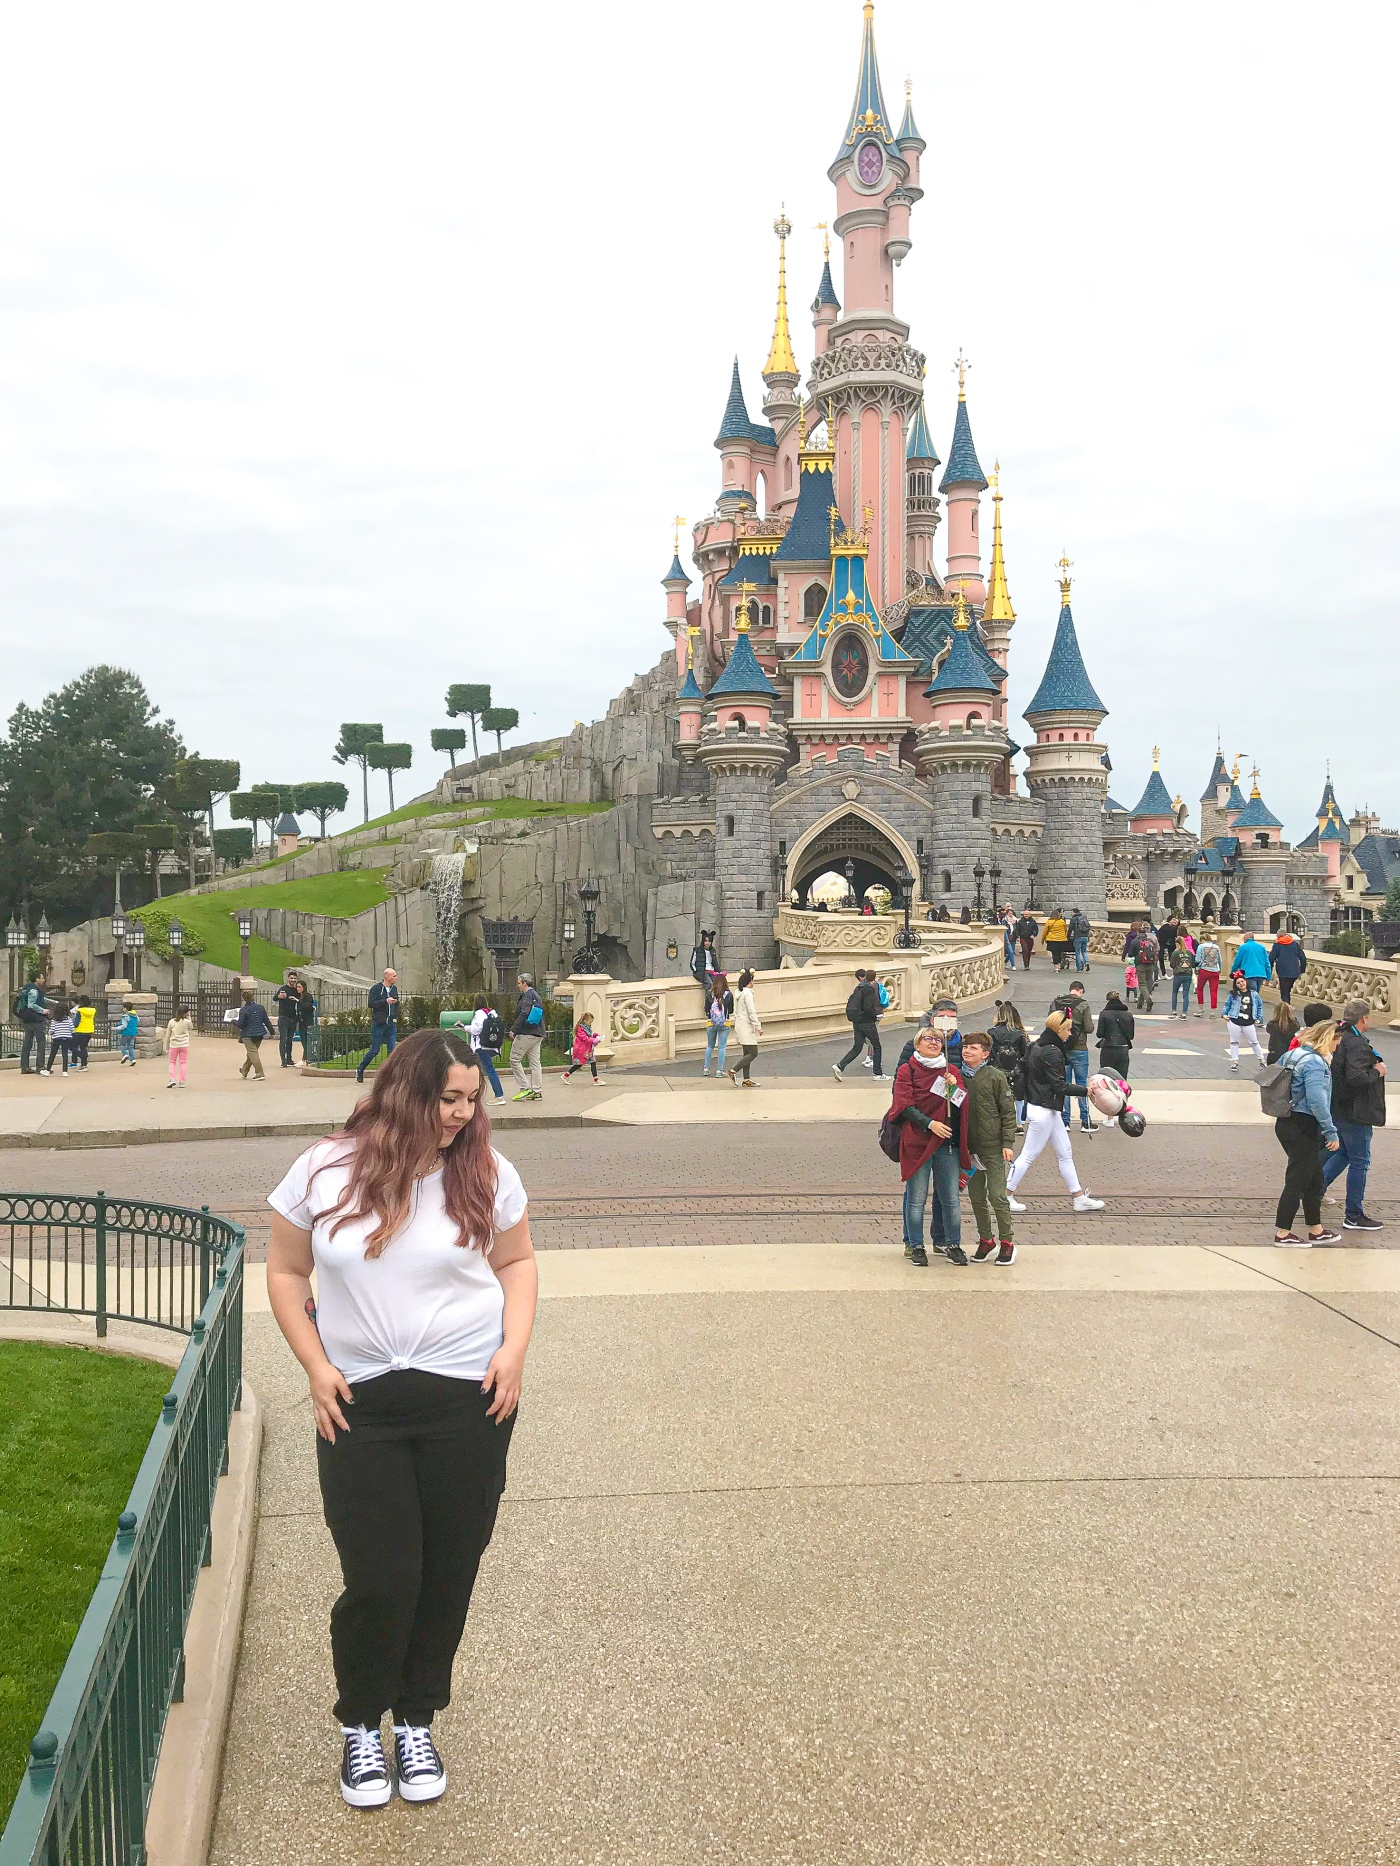 Standing in front of Sleeping Beauty's Castle